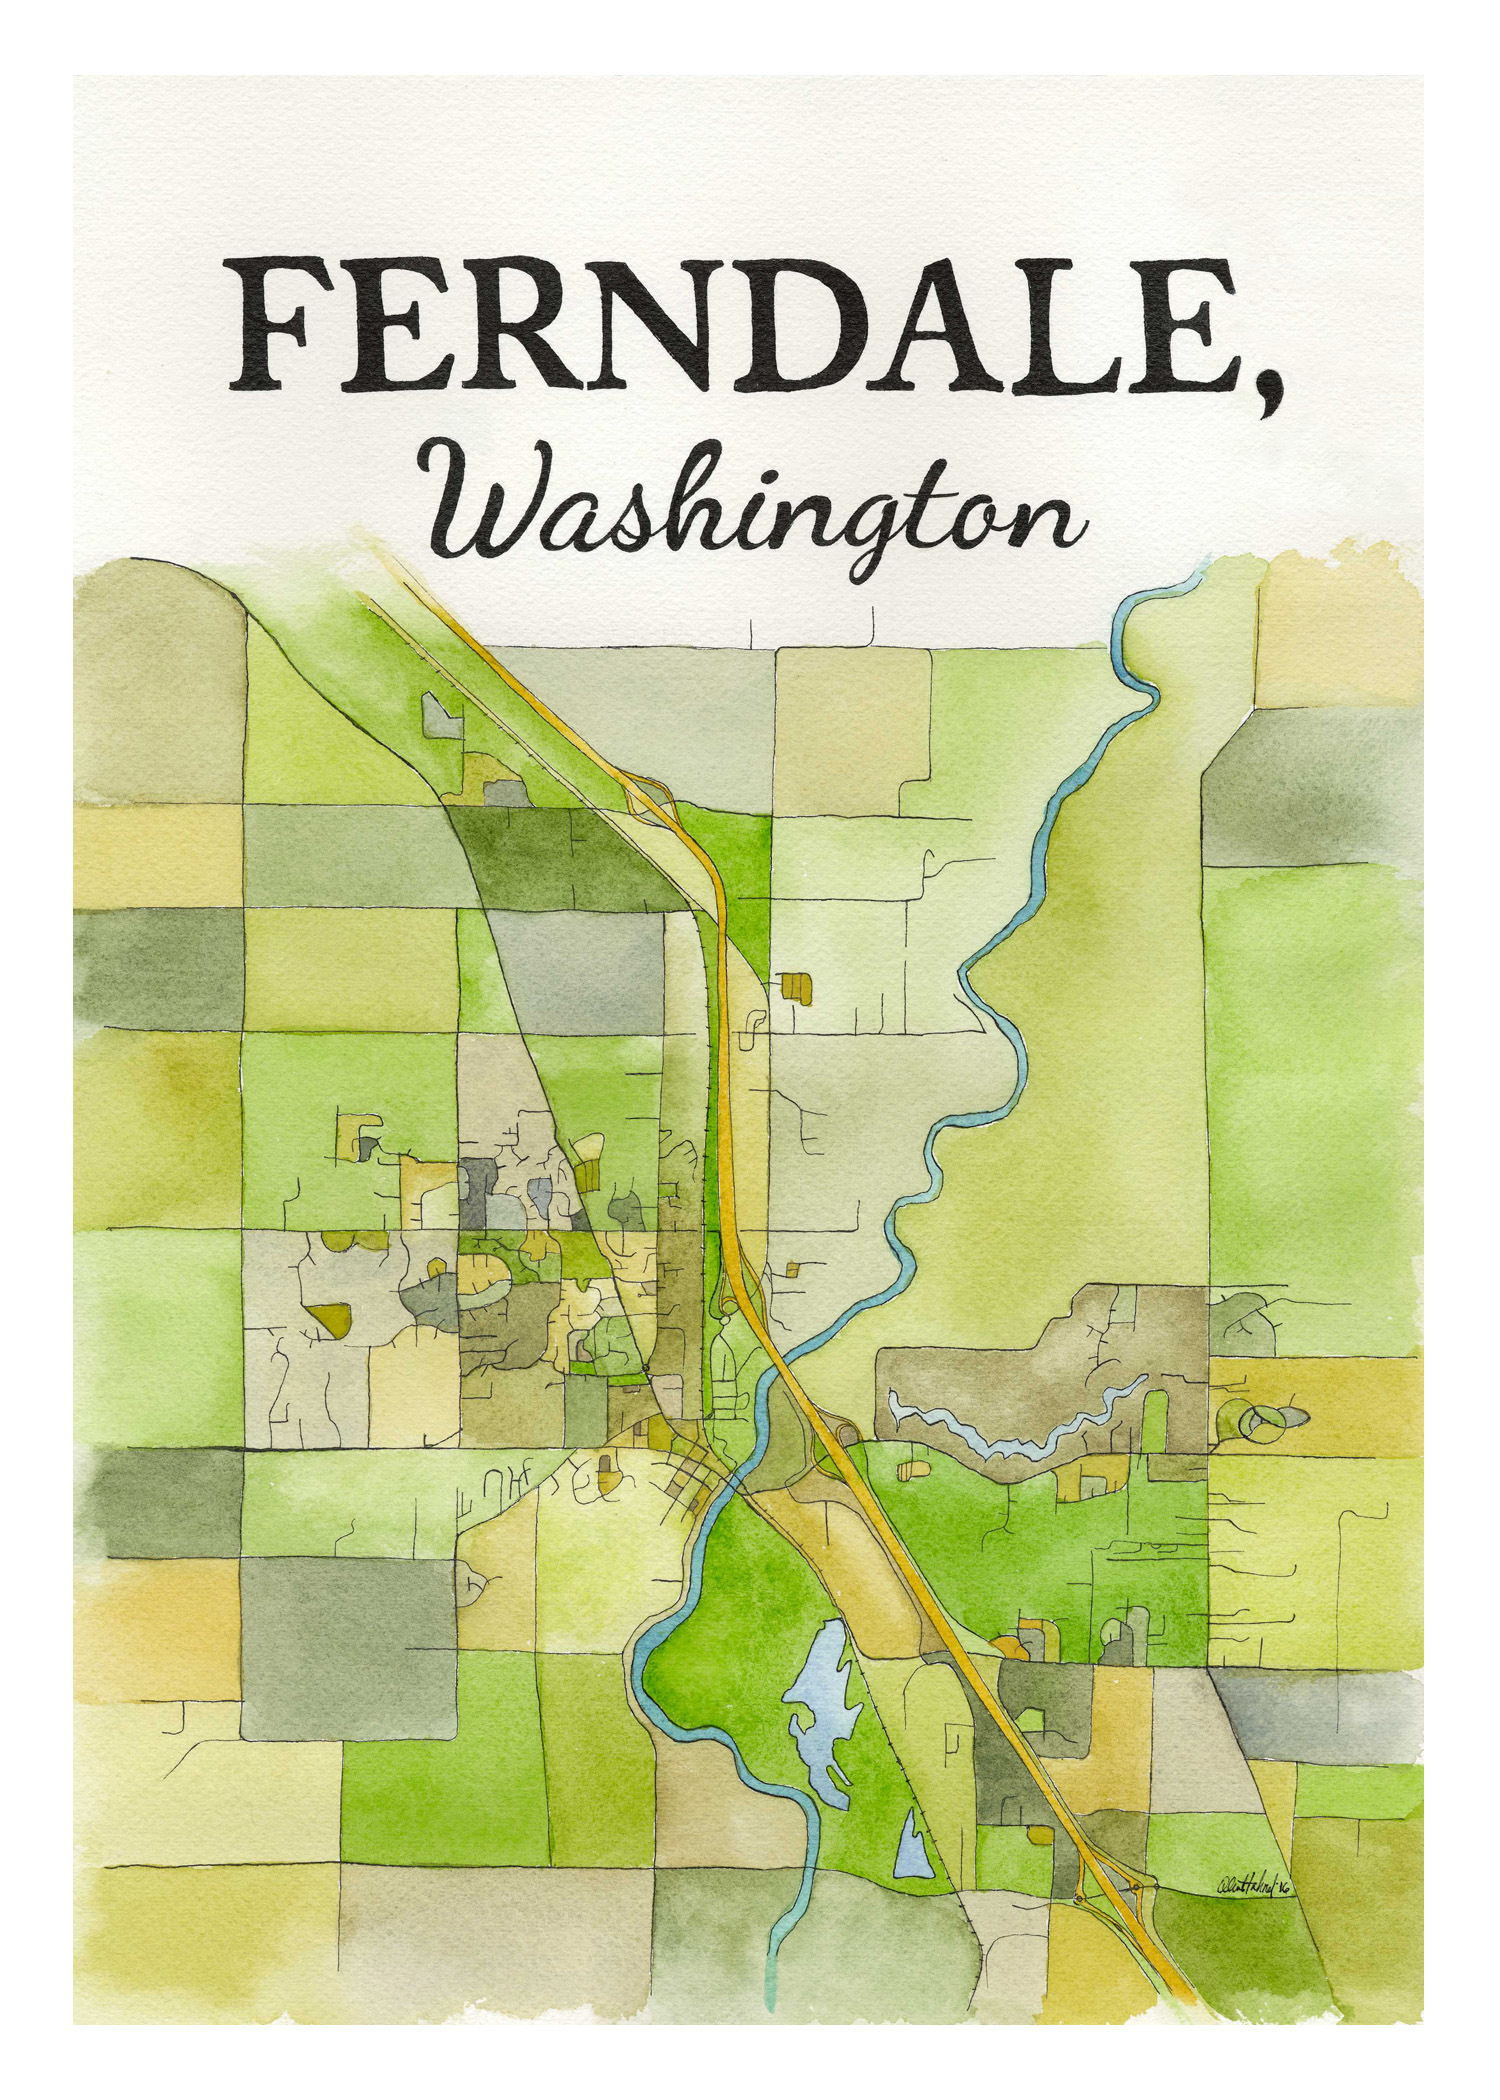 Ferndale Map 2016 Watercolor and India ink